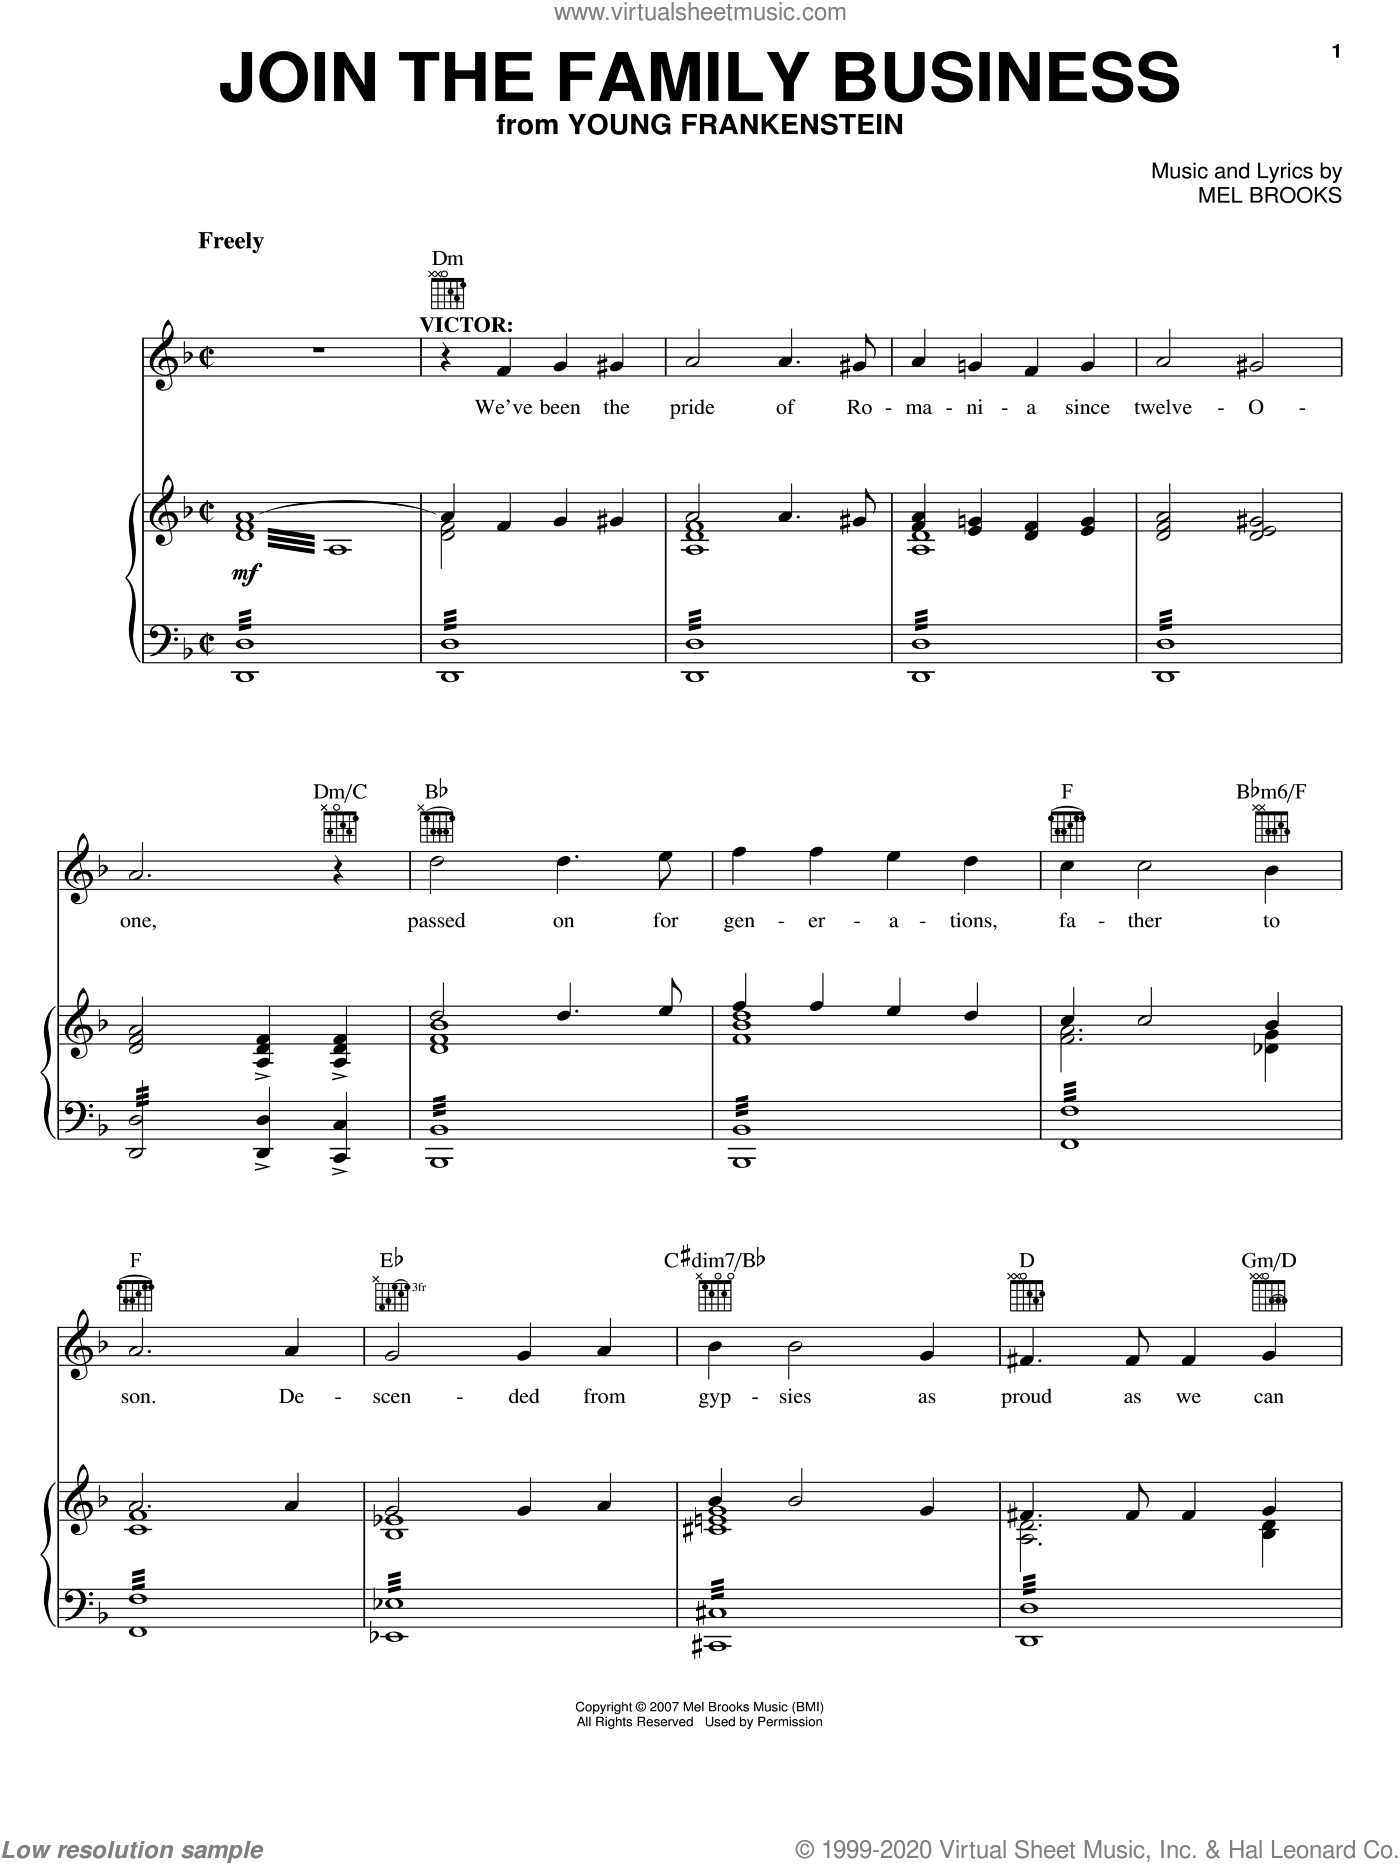 Join The Family Business sheet music for voice, piano or guitar by Thomas Meehan